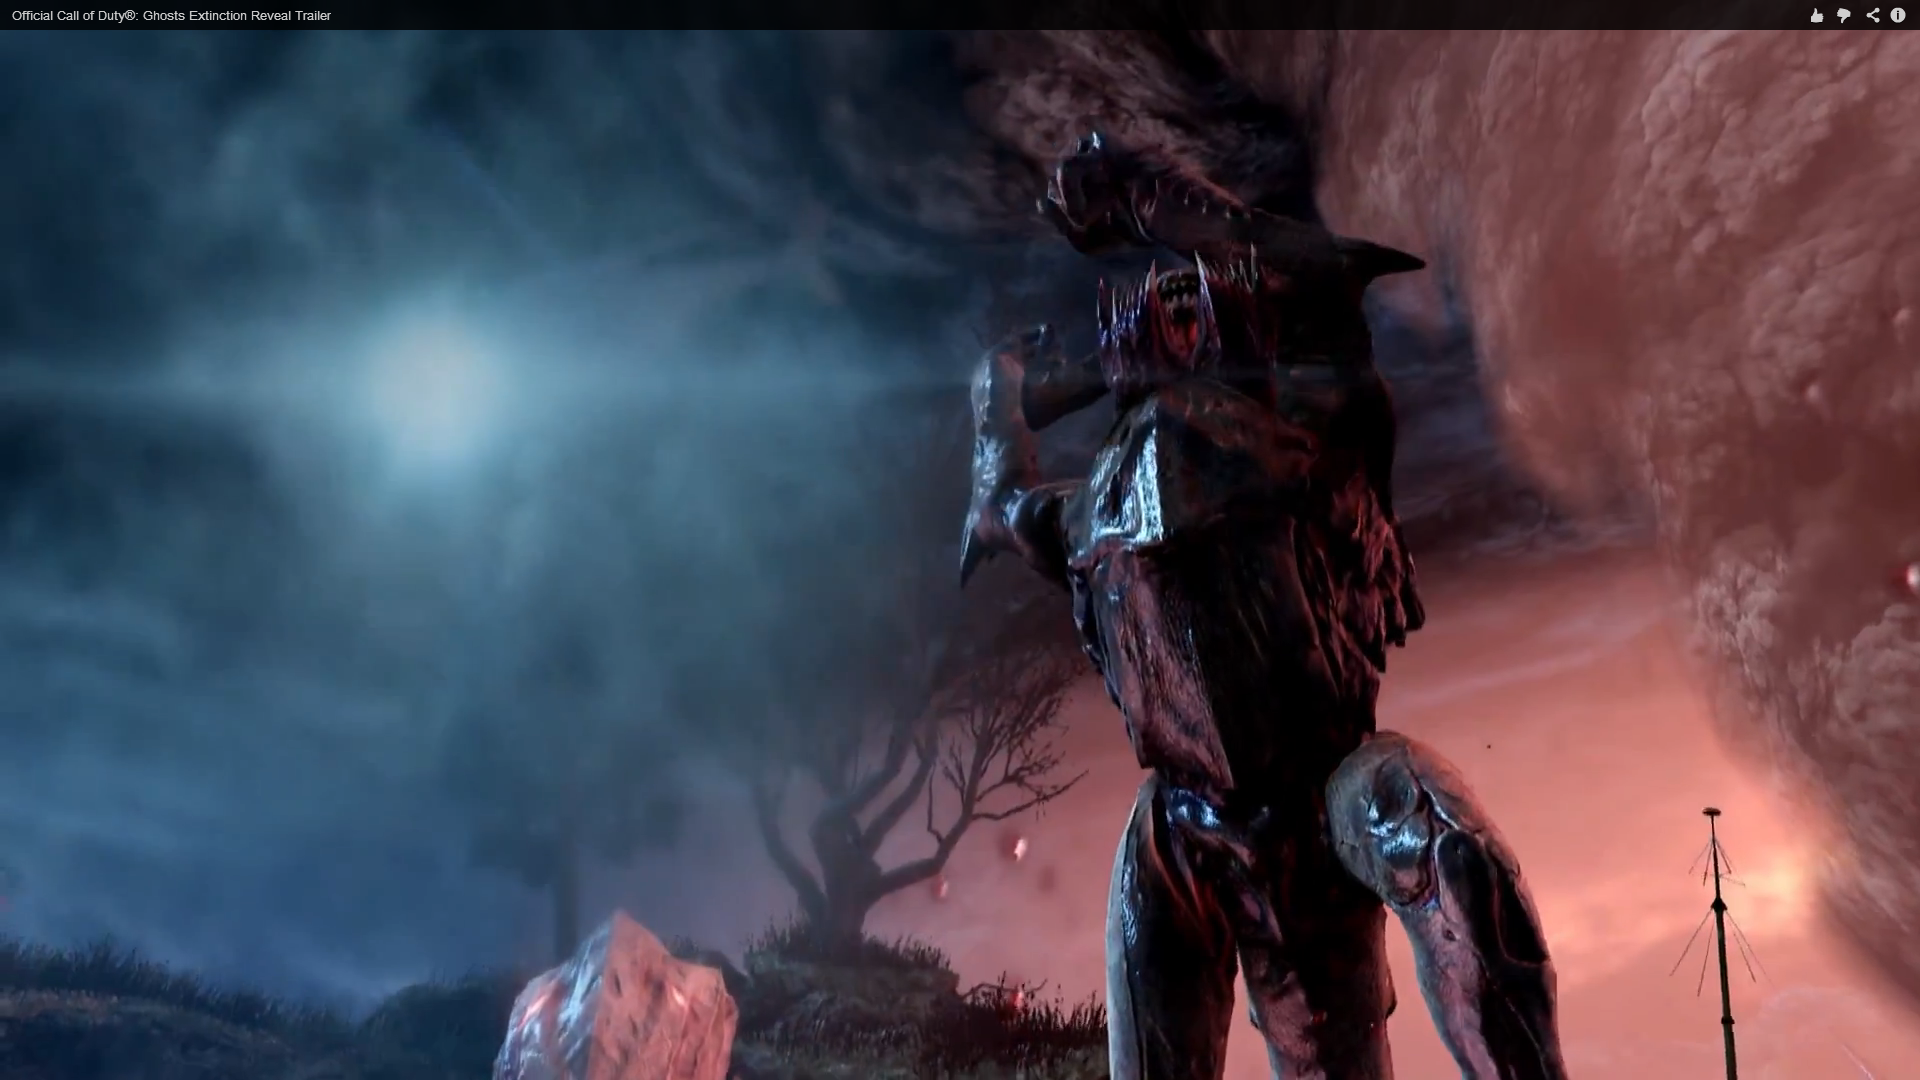 Download Call Of Duty Ghost Extinction Wallpaper